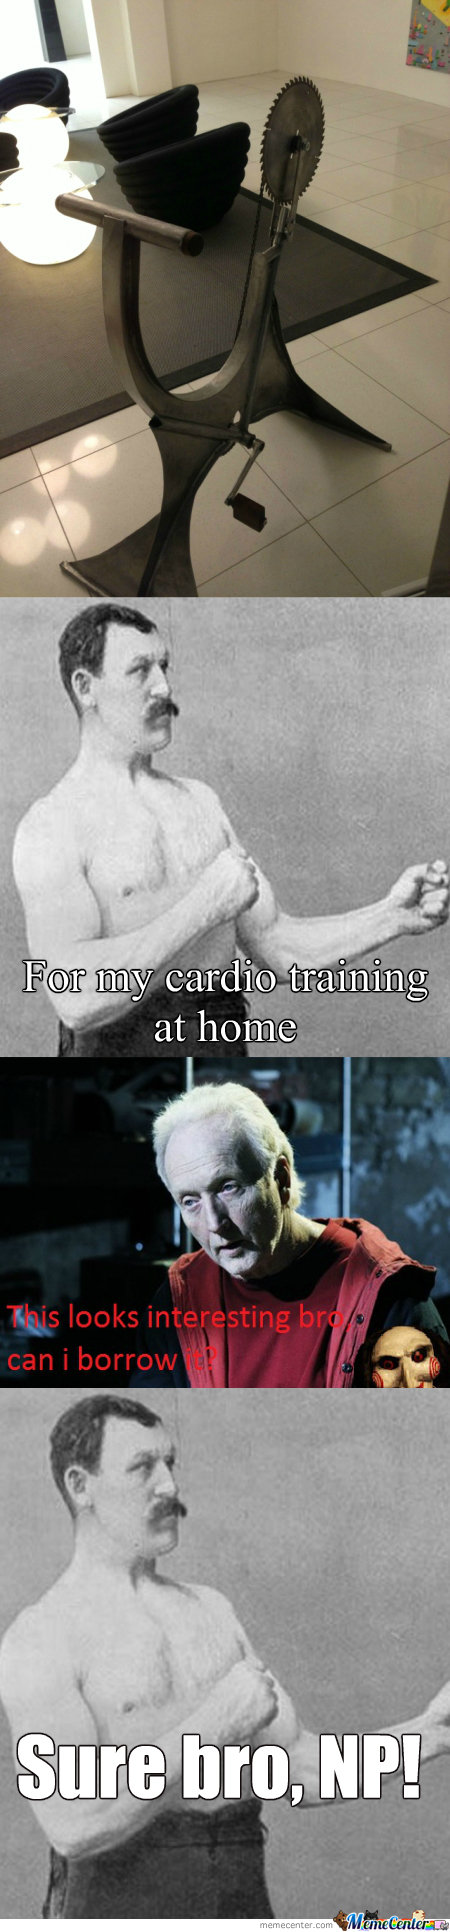 [RMX] Overly Manly Man's Hometrainer